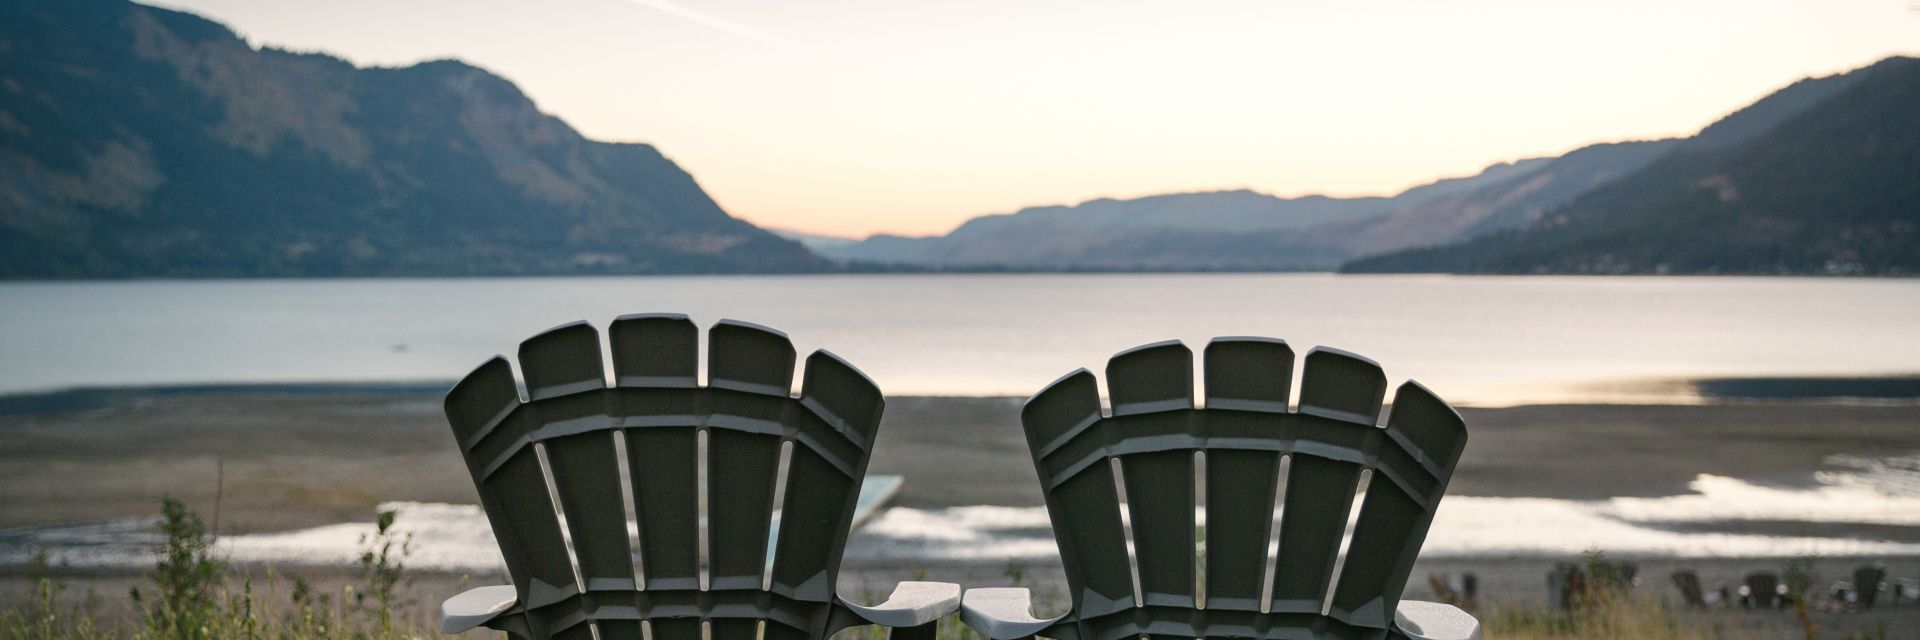 two beach chairs sit facing a body of water with mountains in the background